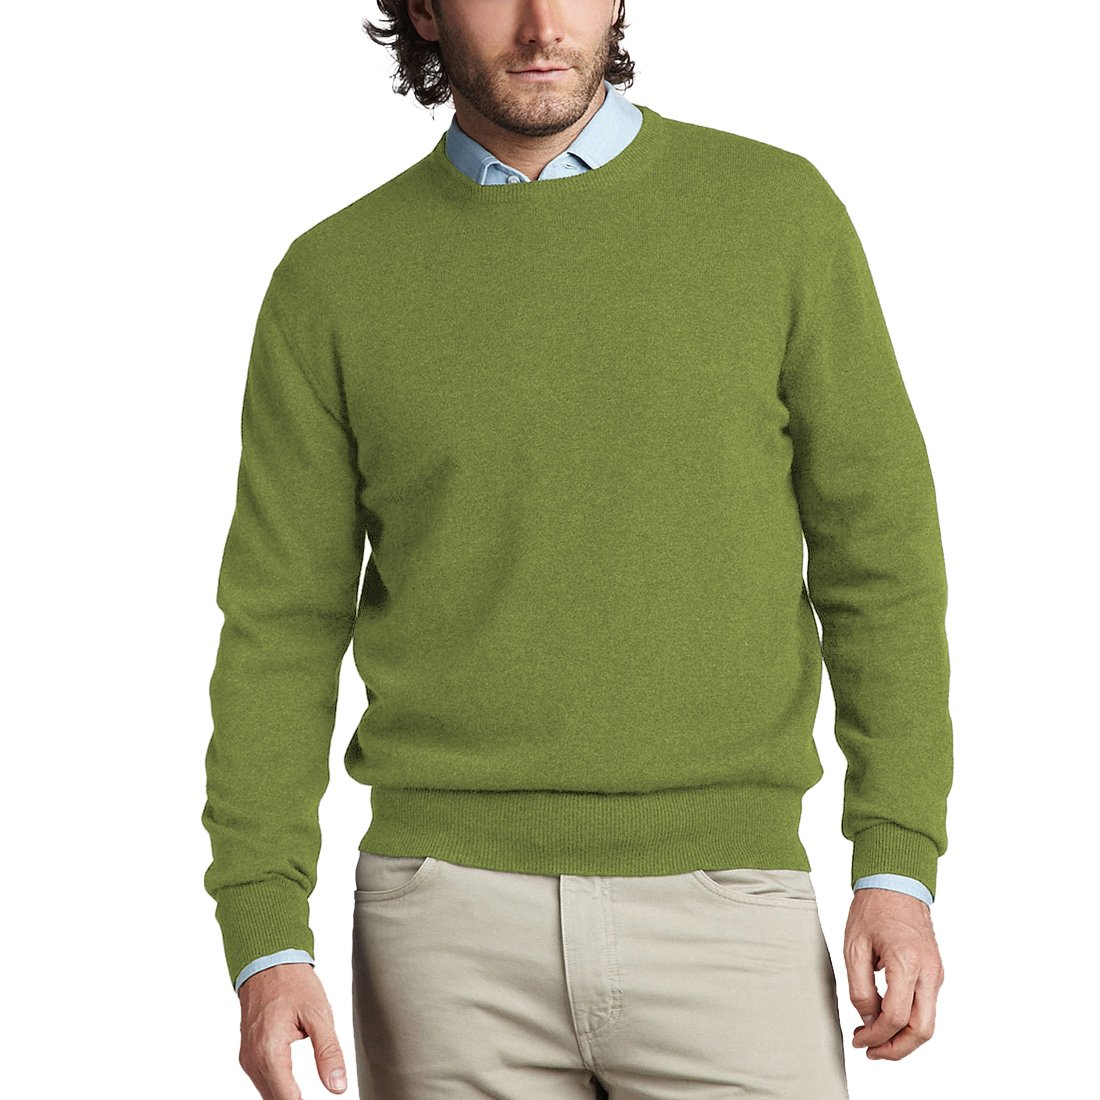 Parisbonbon Men's 100% Cashmere Crew Neck Sweater Color Grass Green Size L by Parisbonbon